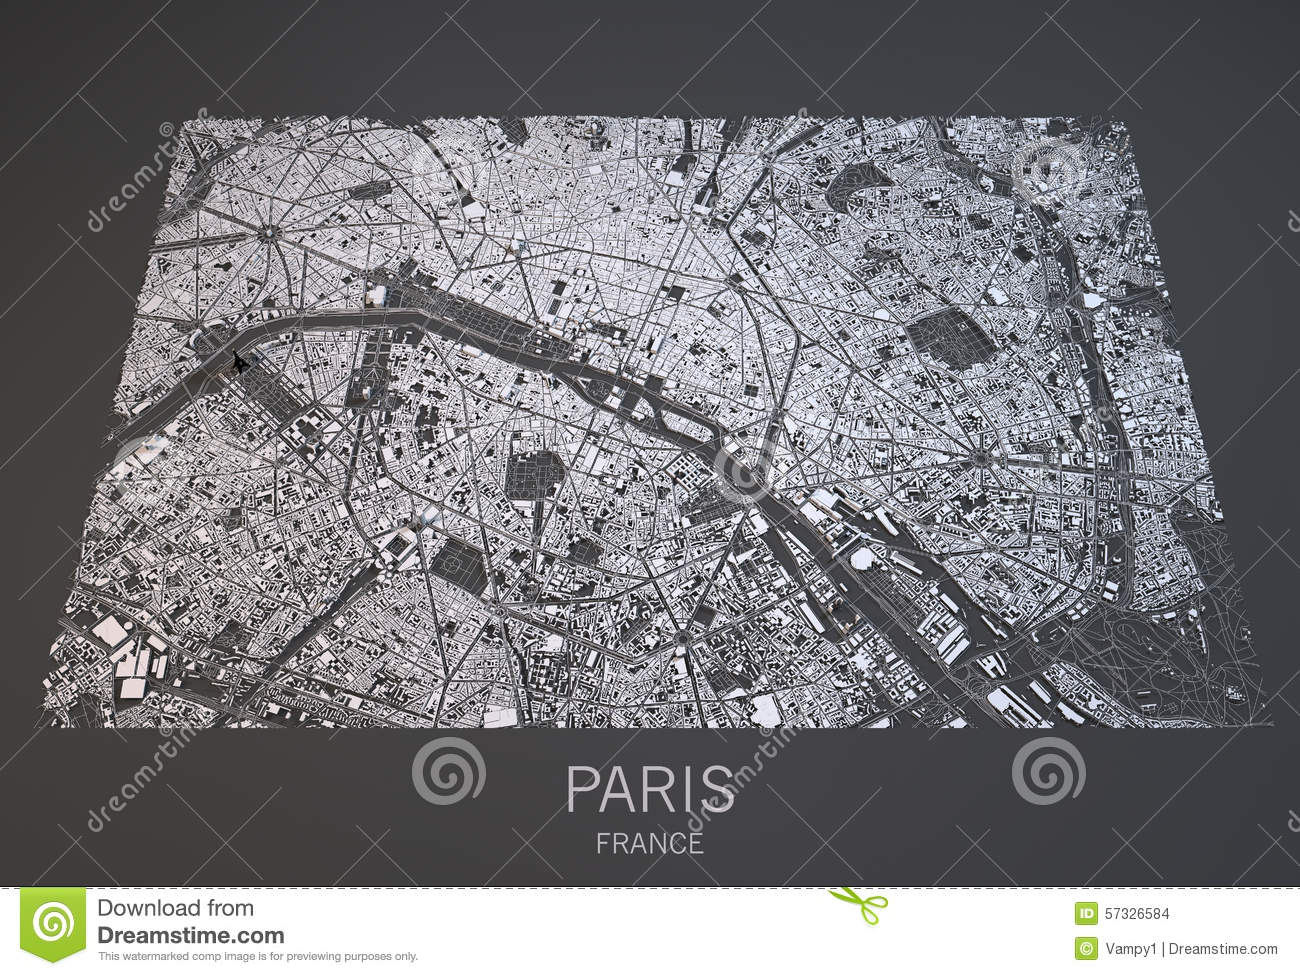 topographic map of paris france, online map of paris france, detailed map of paris france, road map of paris france, mapquest paris france, satellite view of paris france, physical map of paris france, on satellite map of paris france